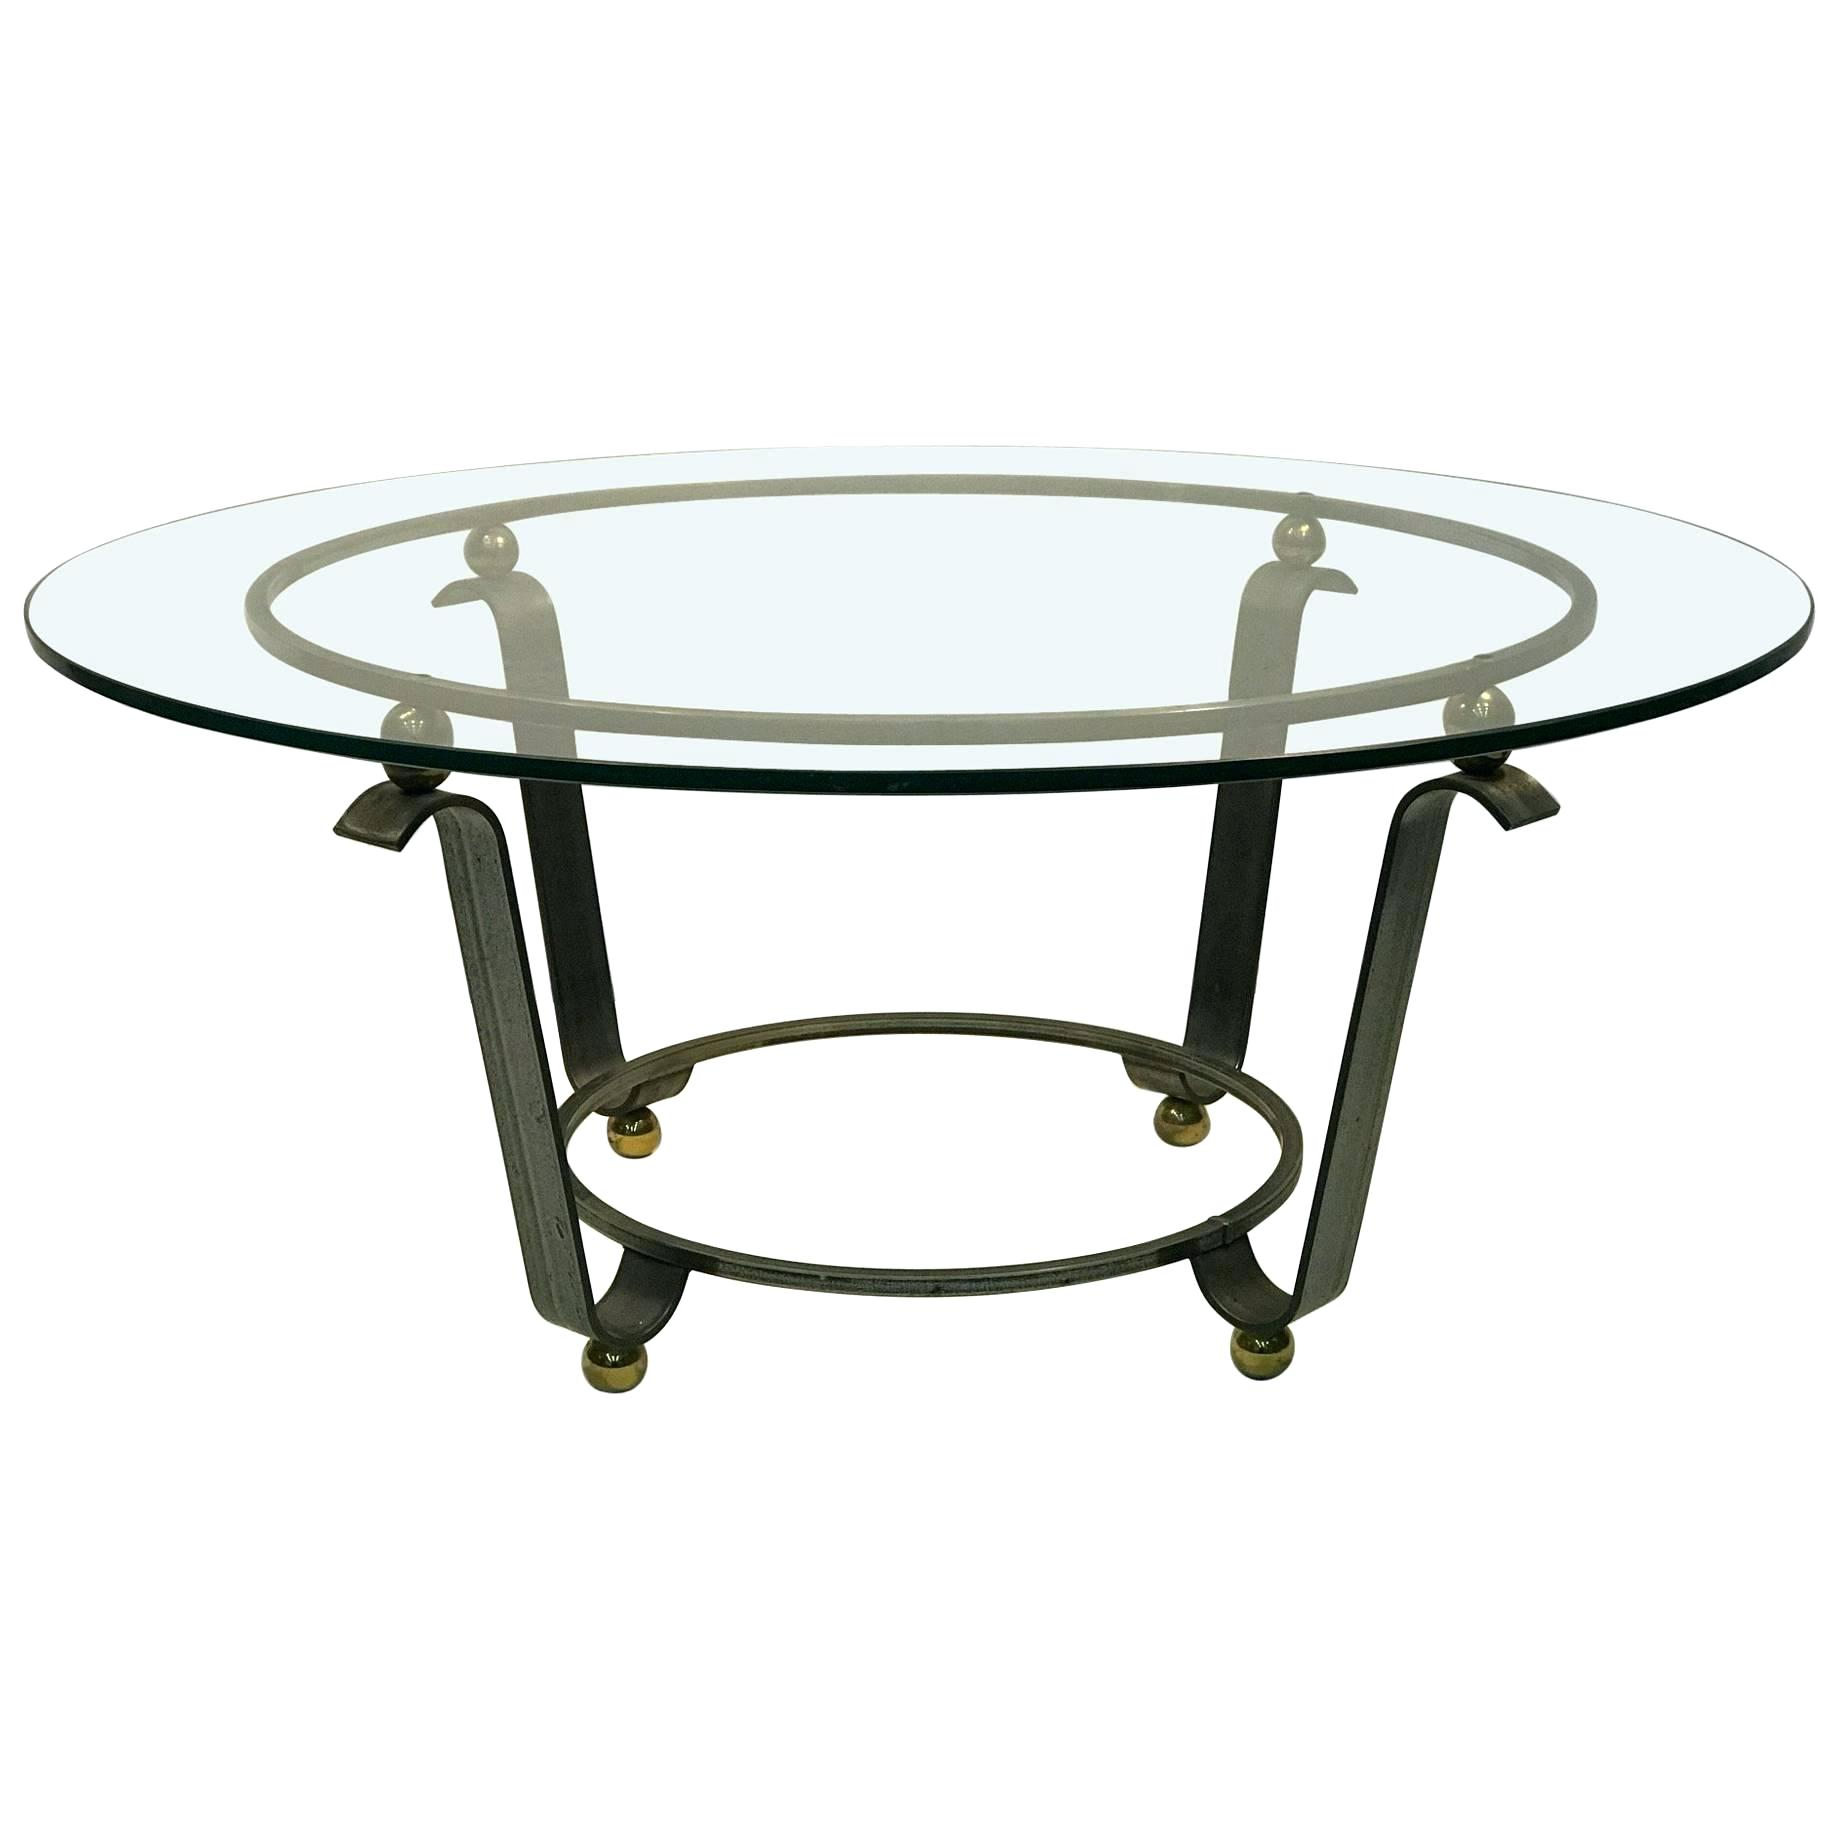 avenue glass top accent table designs cyclone tables torami metal art coffee for master lorelei white acrylic black gold grey set fitted tablecloths west elm mid century bedside